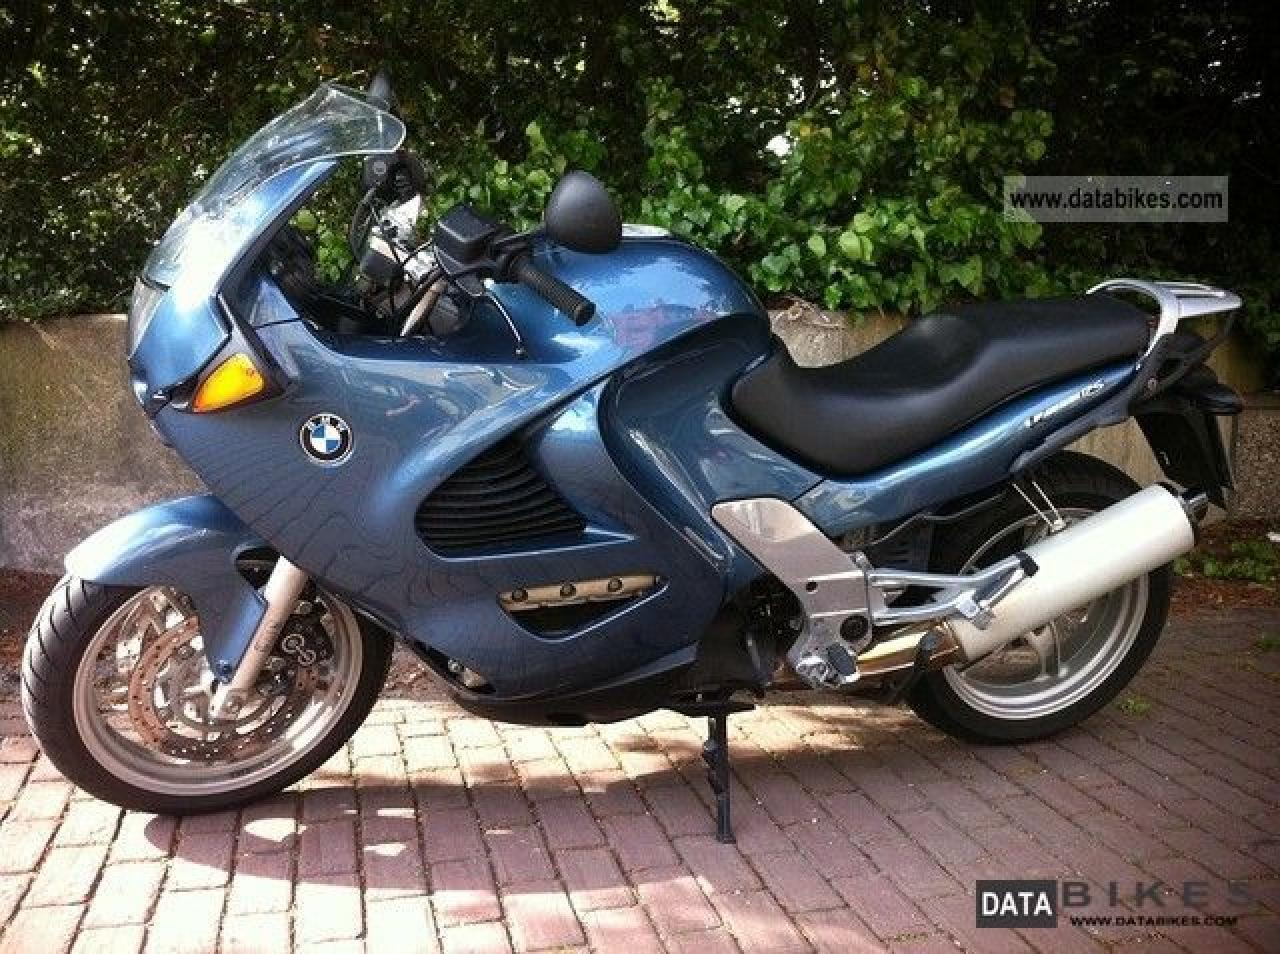 BMW K1200RS 1999 images #43964